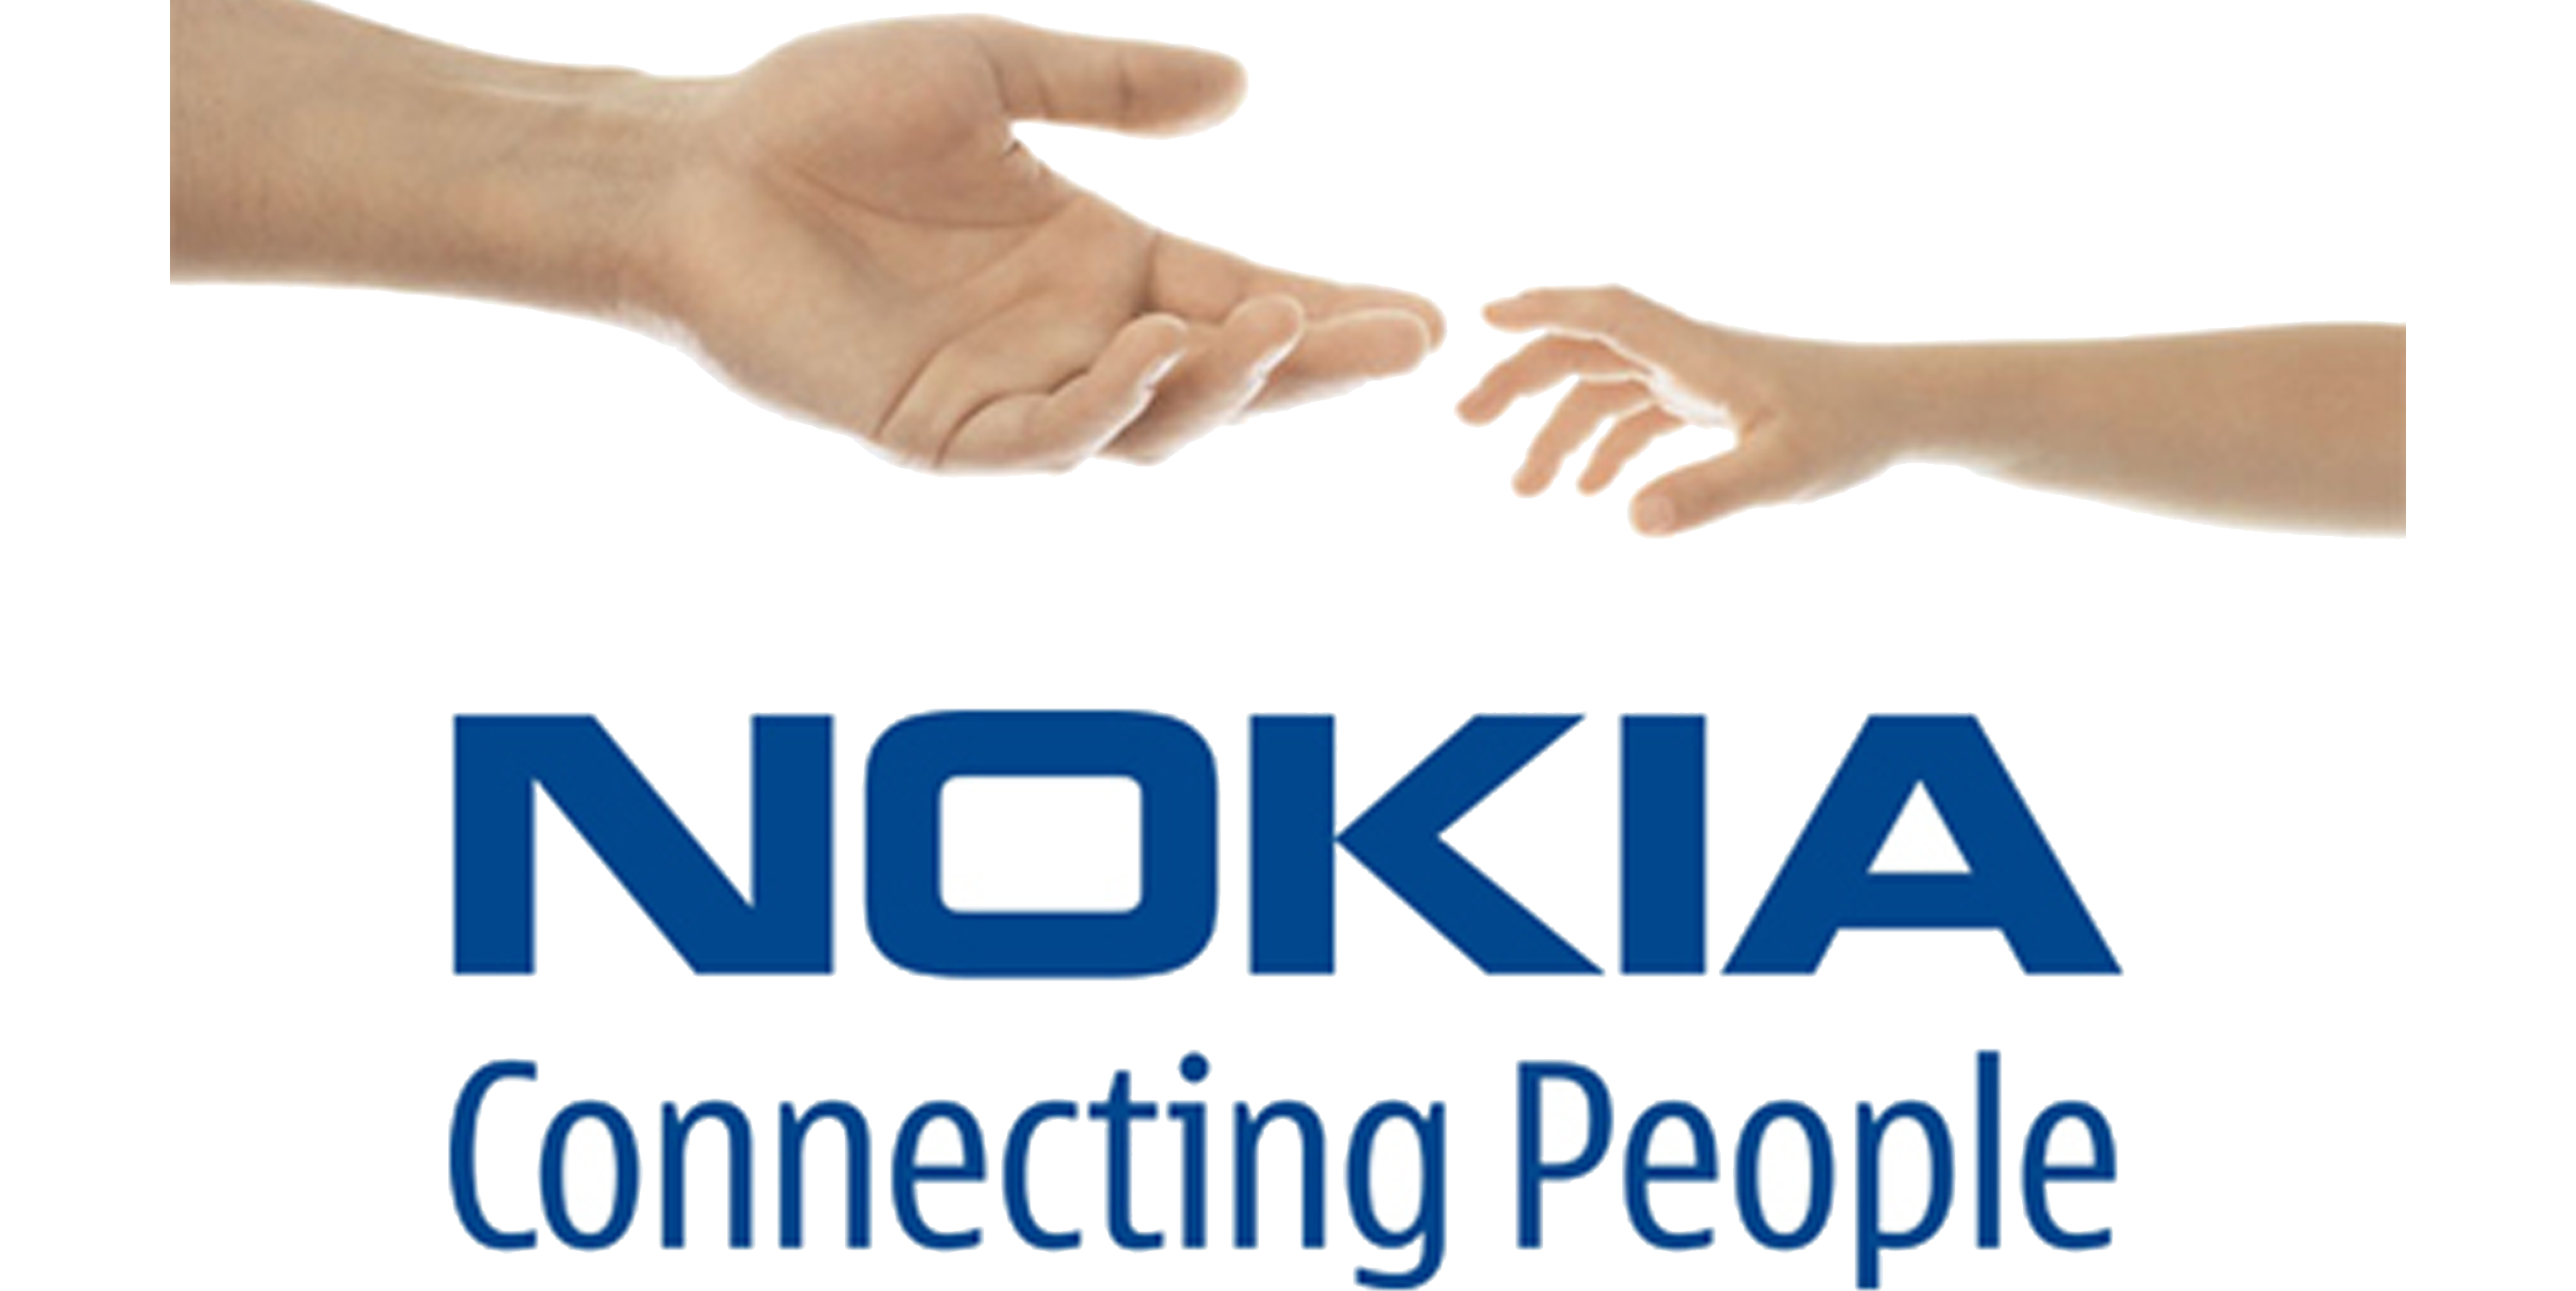 motorola and nokia company financial analysis Motorola solutions  what are the actual financial impacts for investors as motorola loses its monopoly pricing power on us handsets  in european markets, motorola competes with nokia's .